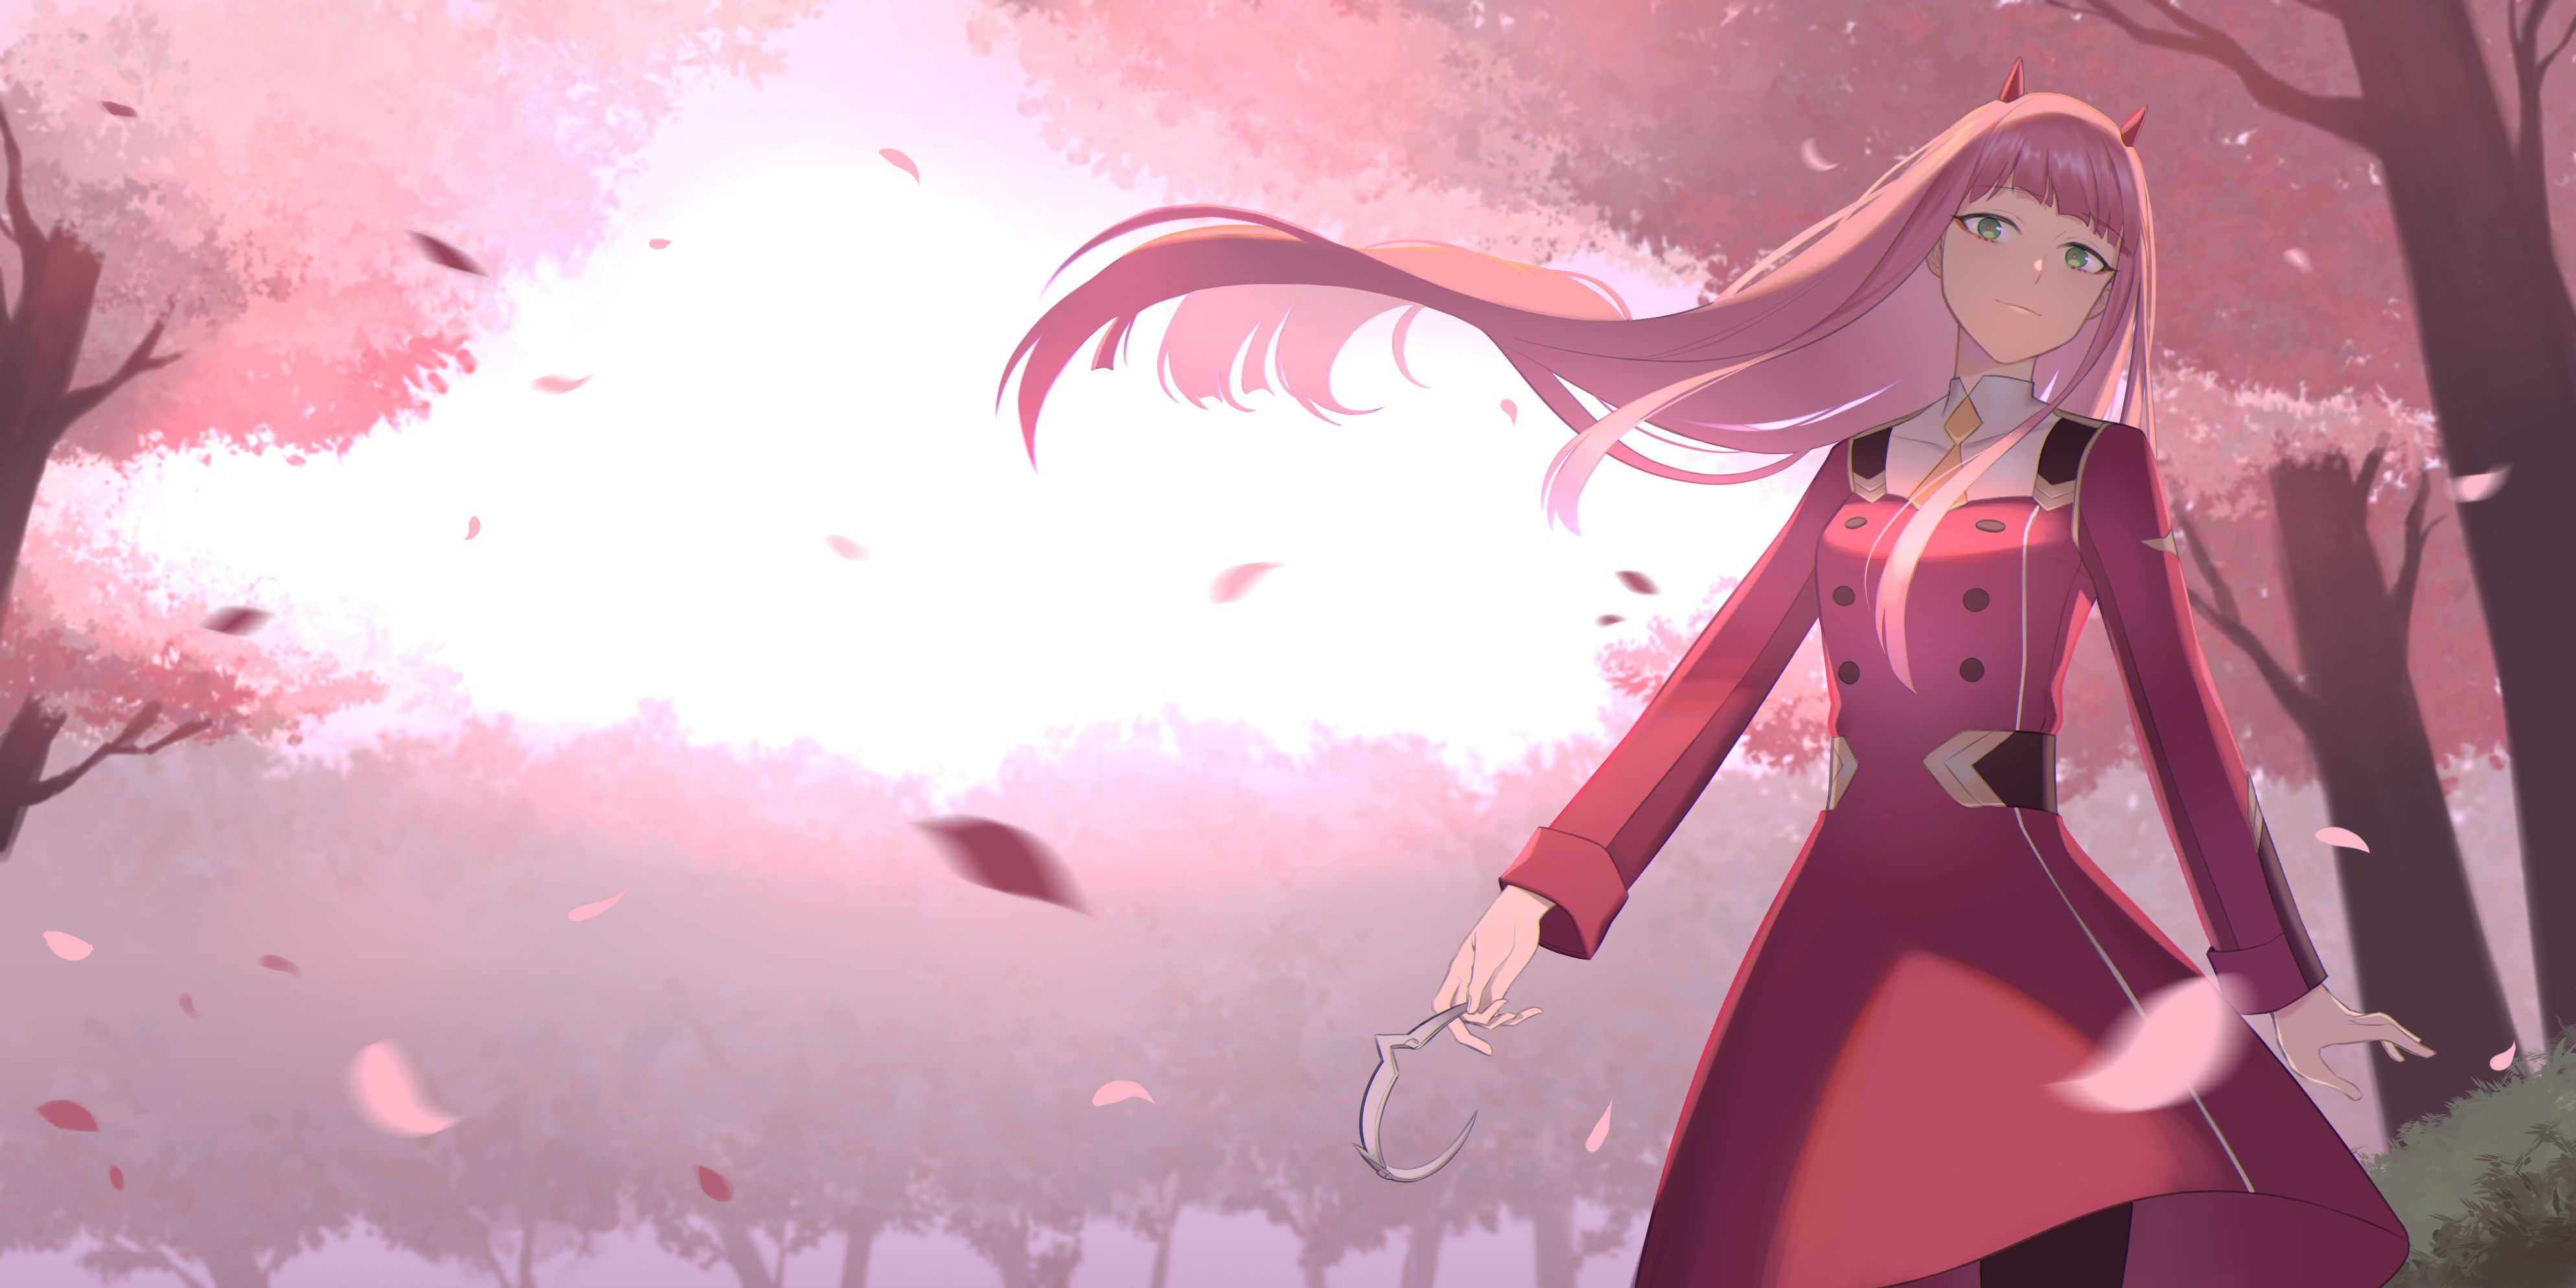 Zero Two - Darling in the Franxx  Anime backgrounds wallpapers